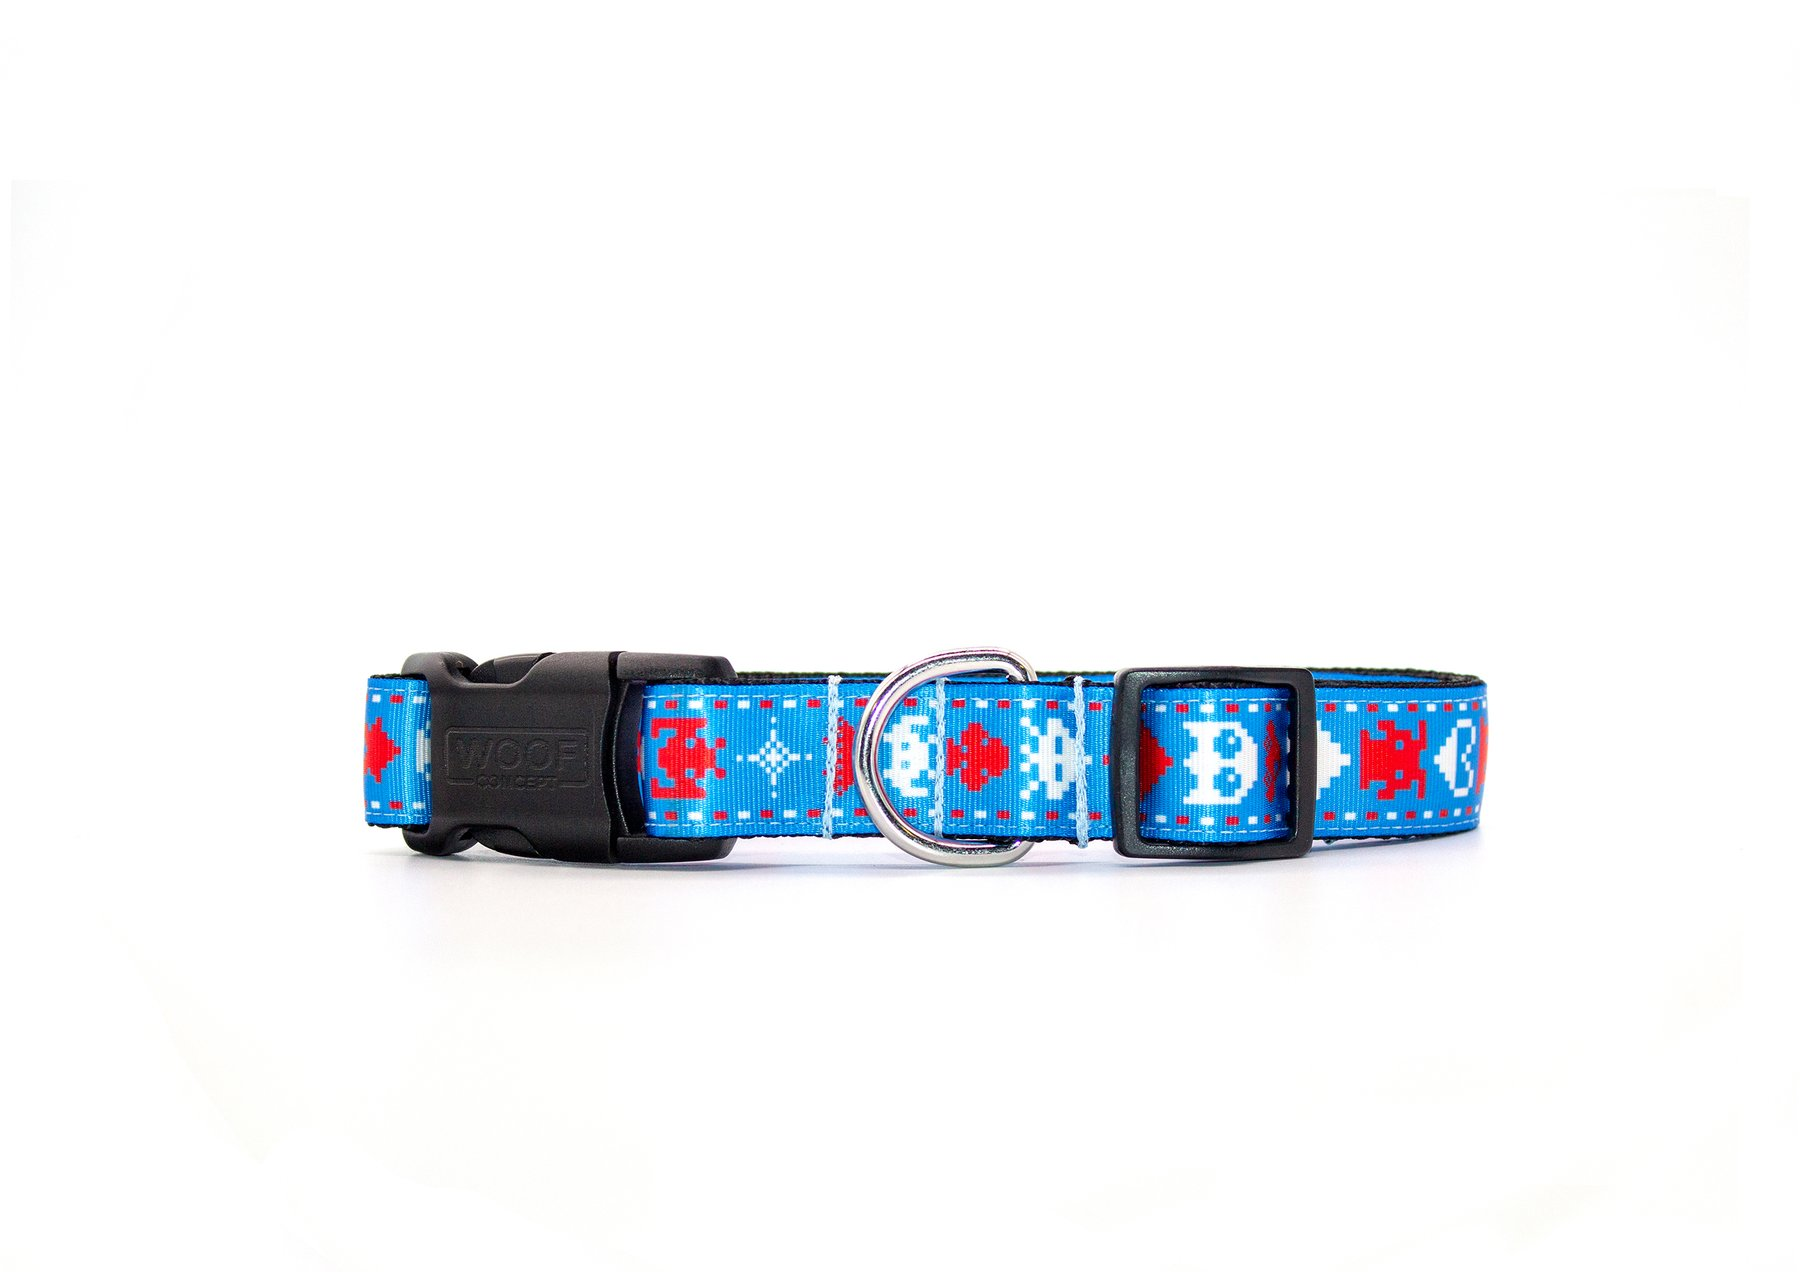 Woof Concept Dog Collar, Pixel, Small